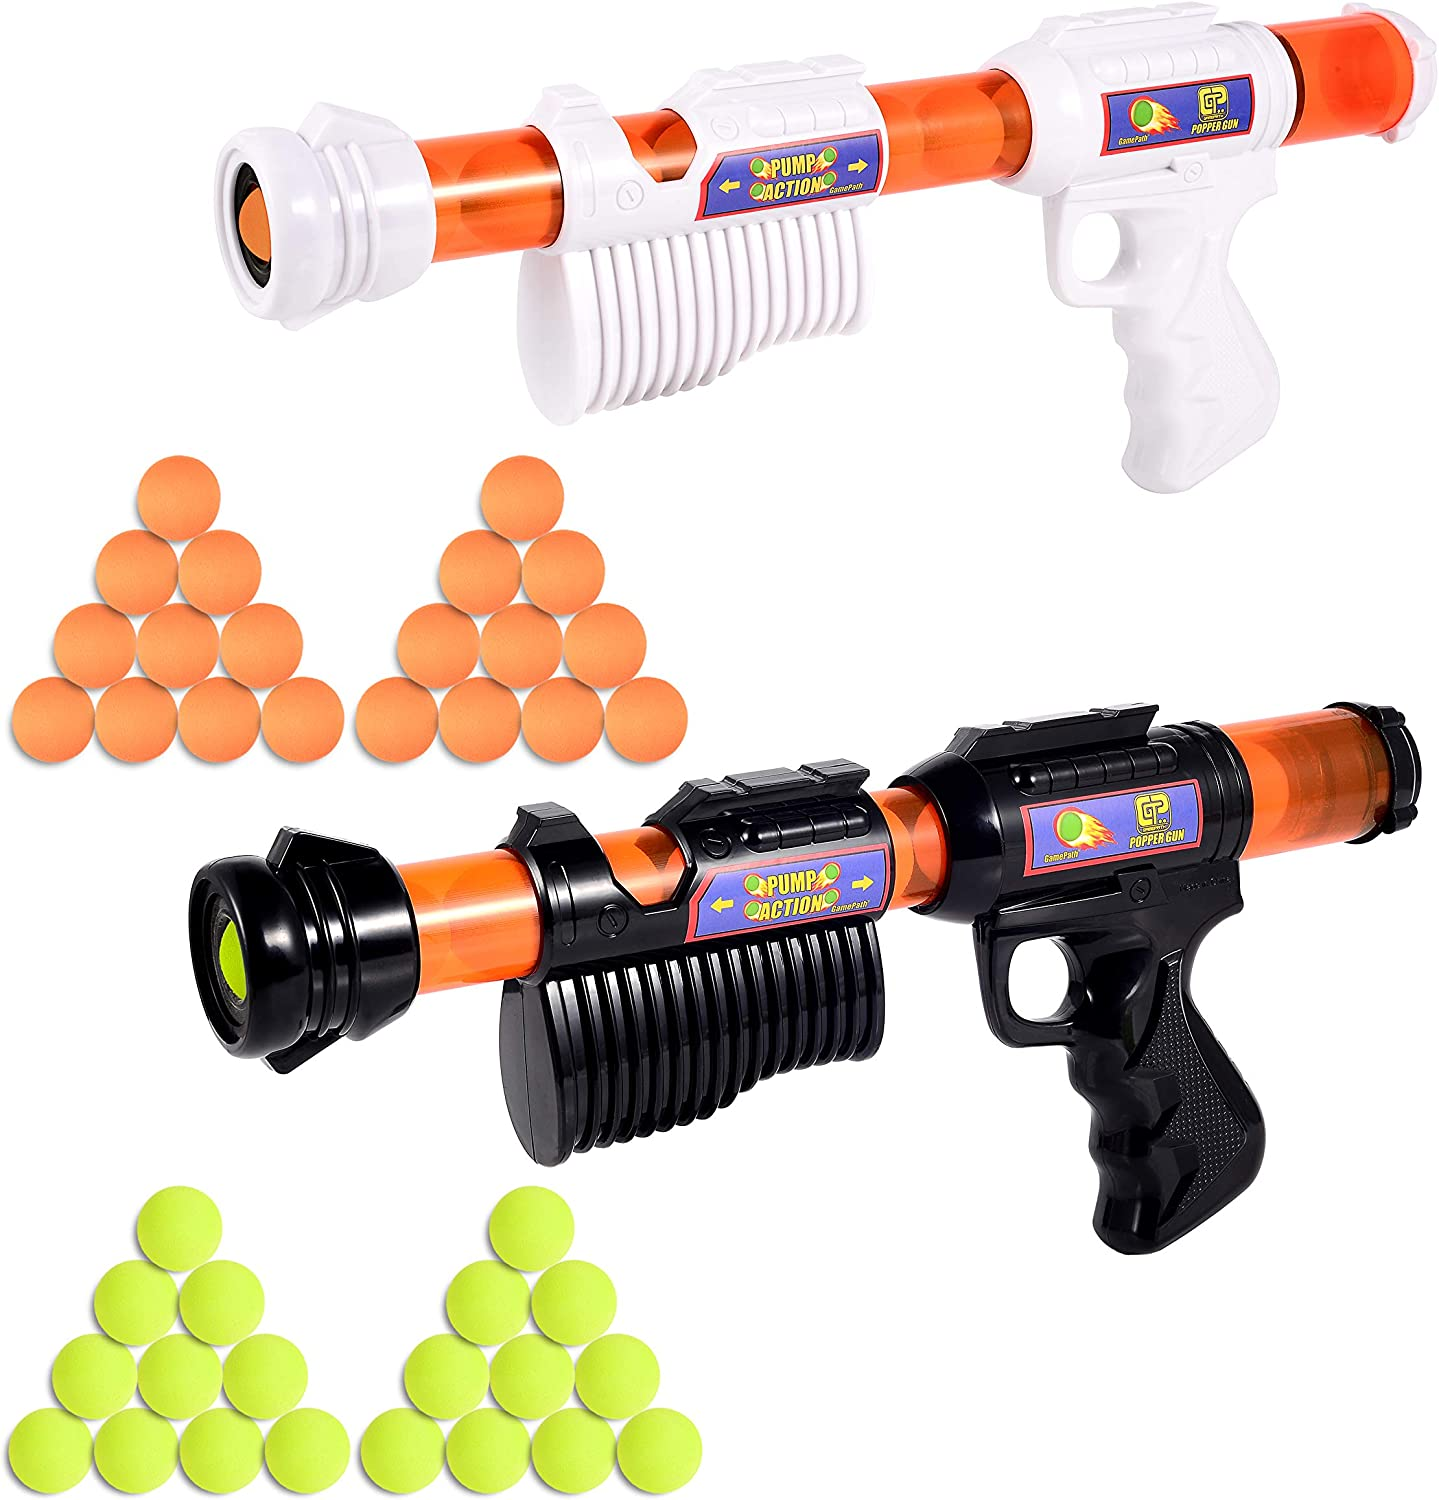 GamePath 2 pcs Power Popper Gun Dual Battle Pack Foam Ball Play Guns, Toy Guns for Kids Adults -- 40 pcs Soft Foam Balls